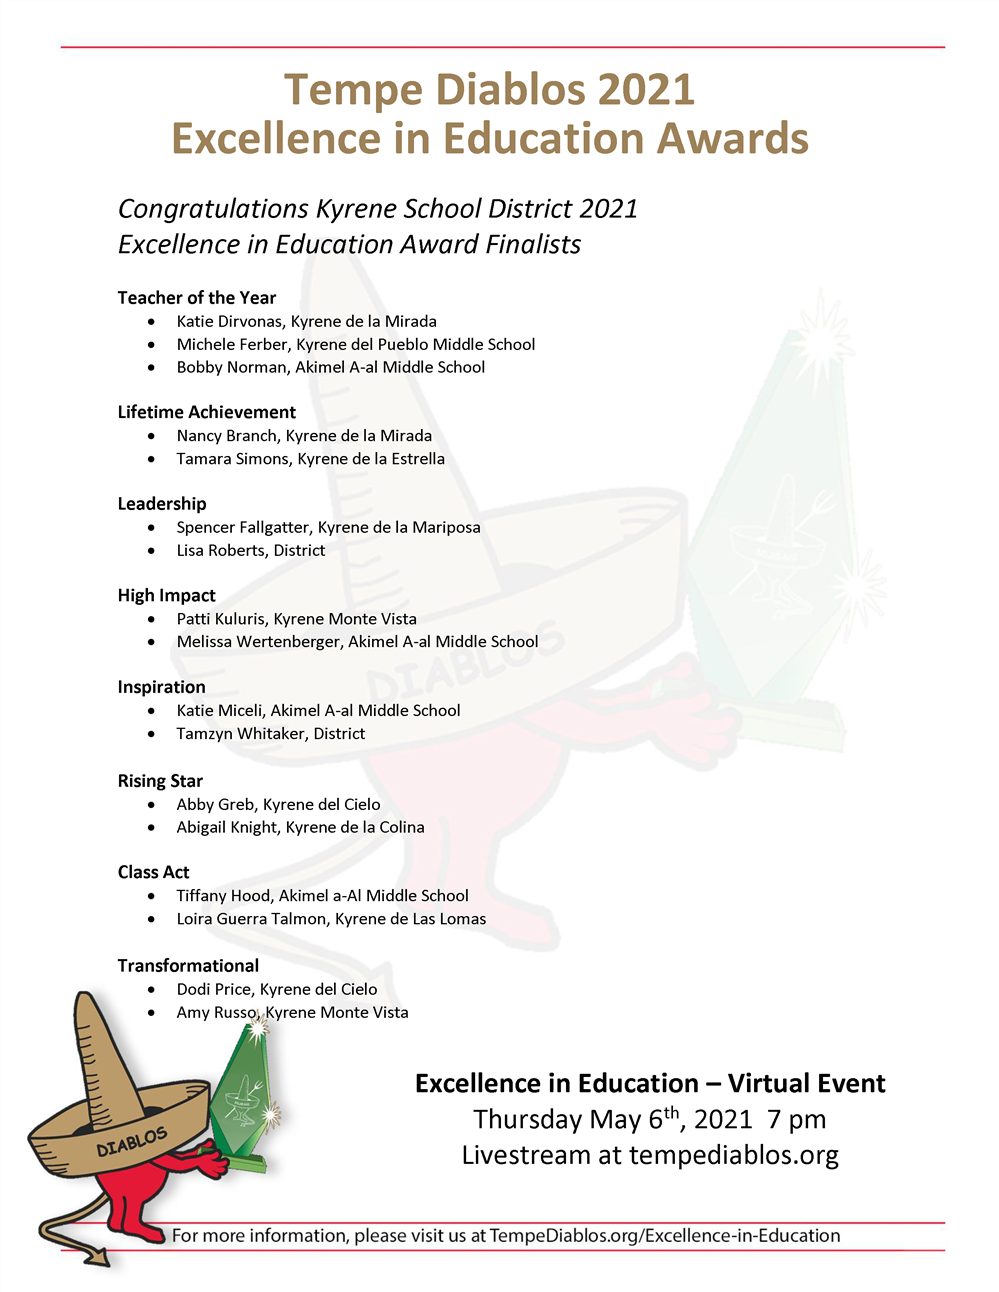 List of Tempe Diablos 2021 Excellence in Education Awards